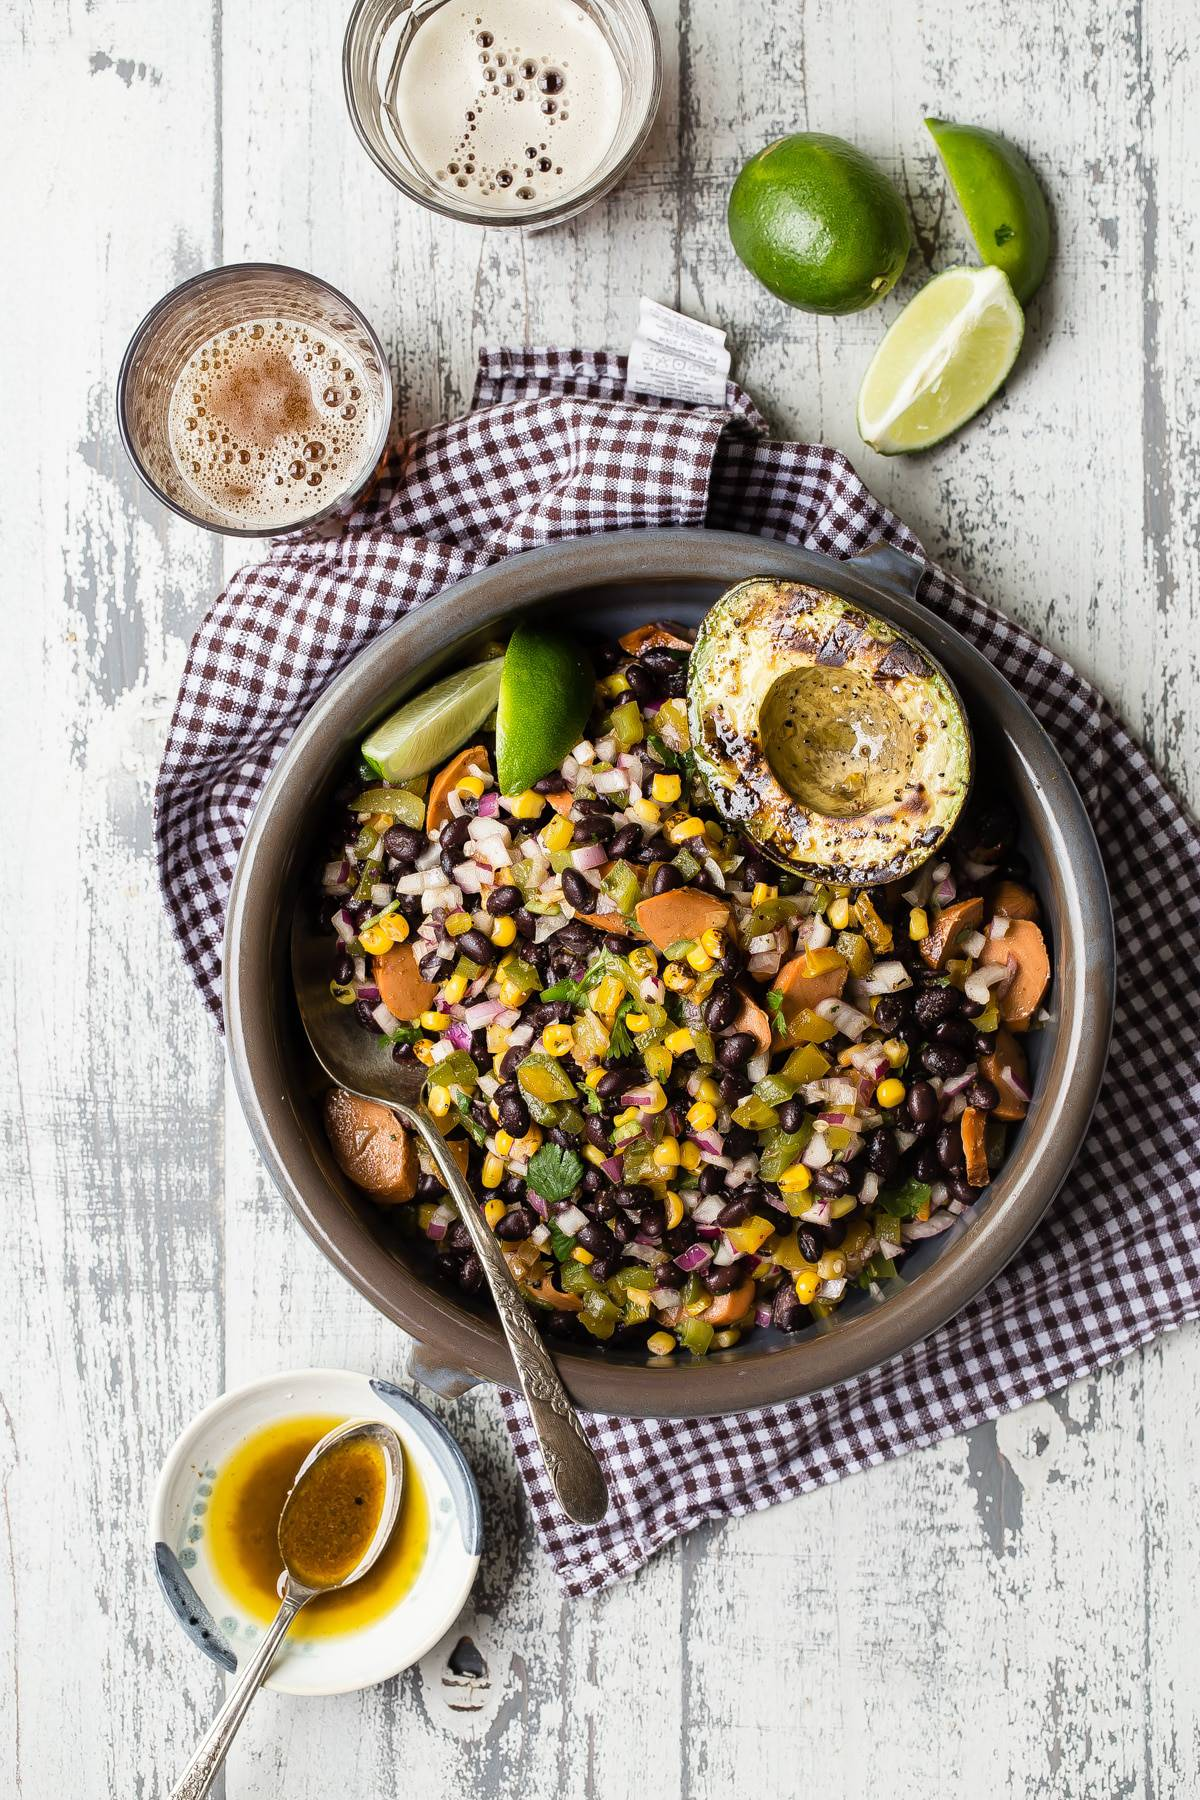 Nutritious vegetarian black bean salad